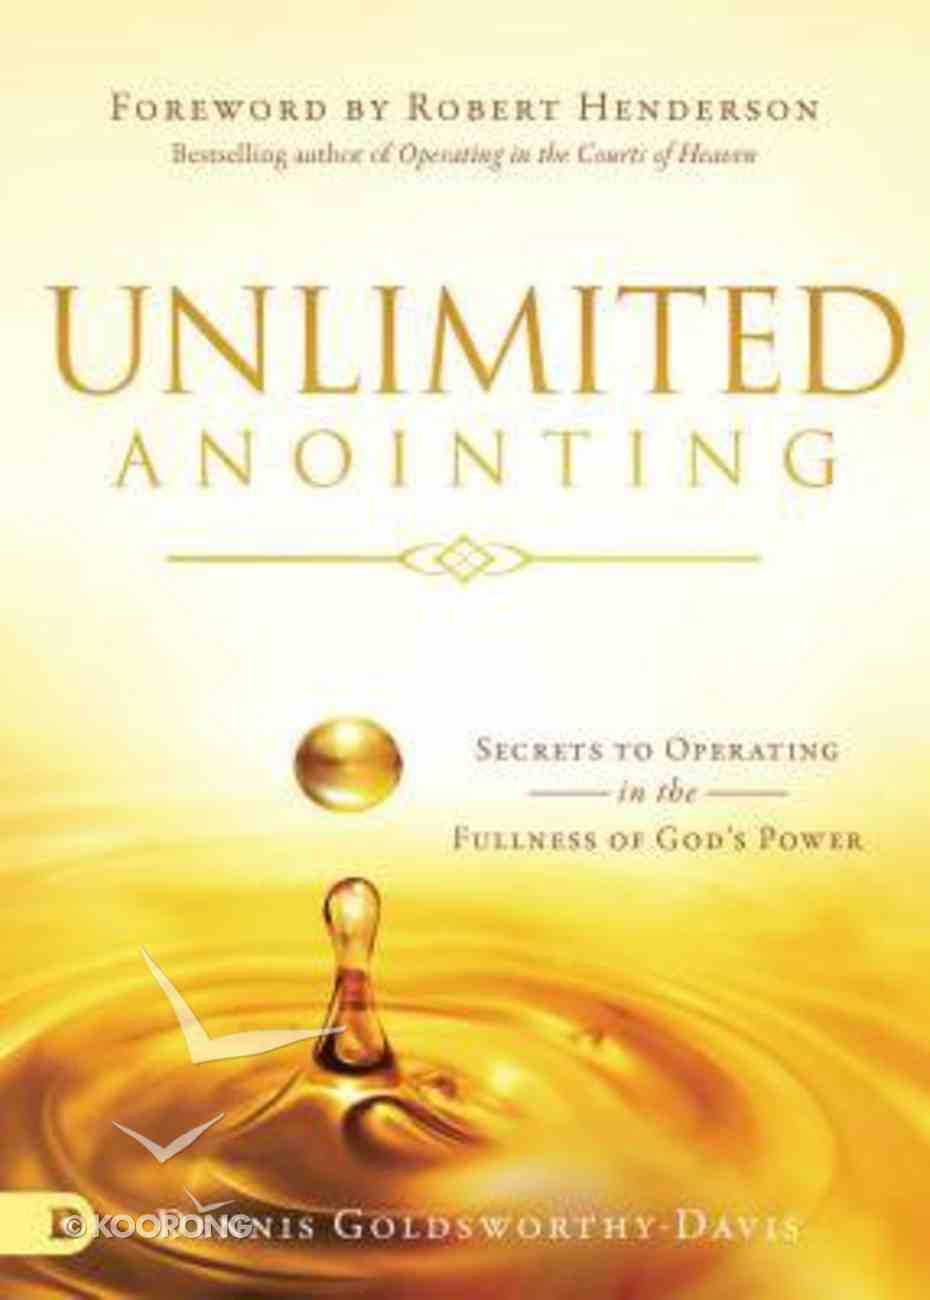 Unlimited Anointing: Secrets to Operating in the Fullness of God's Power Paperback